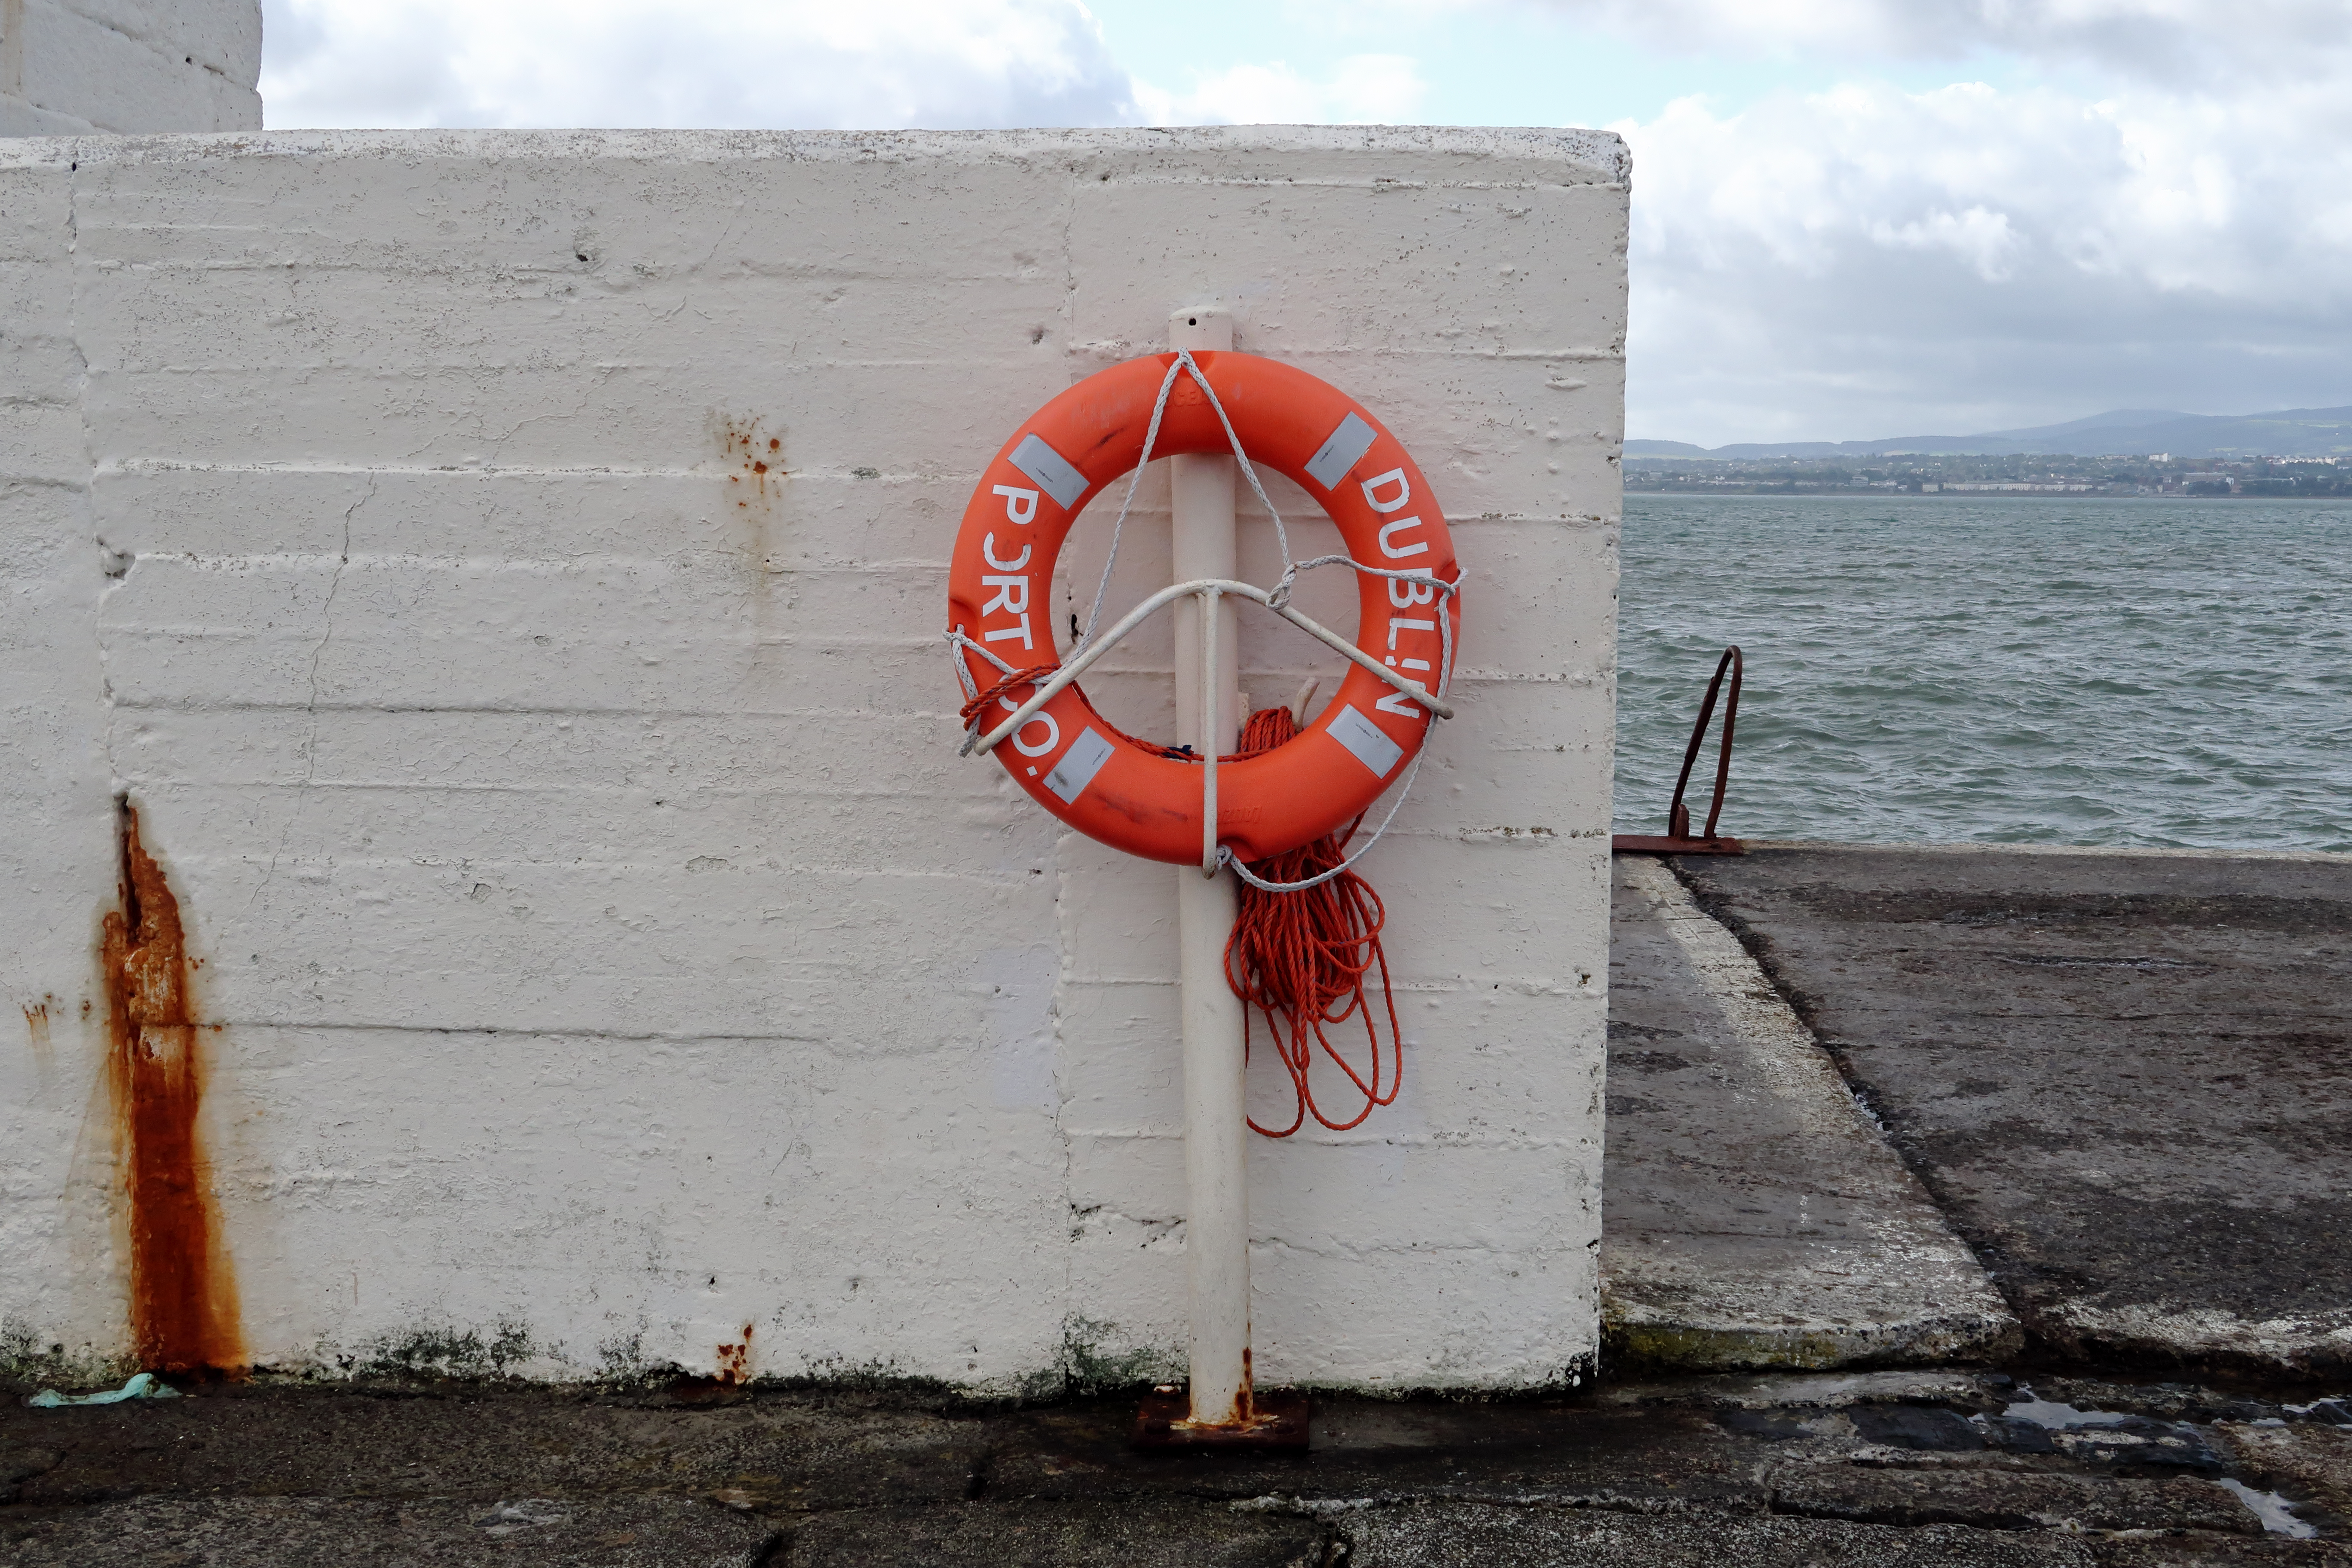 12 Dublin Port Co. Lifebuoy